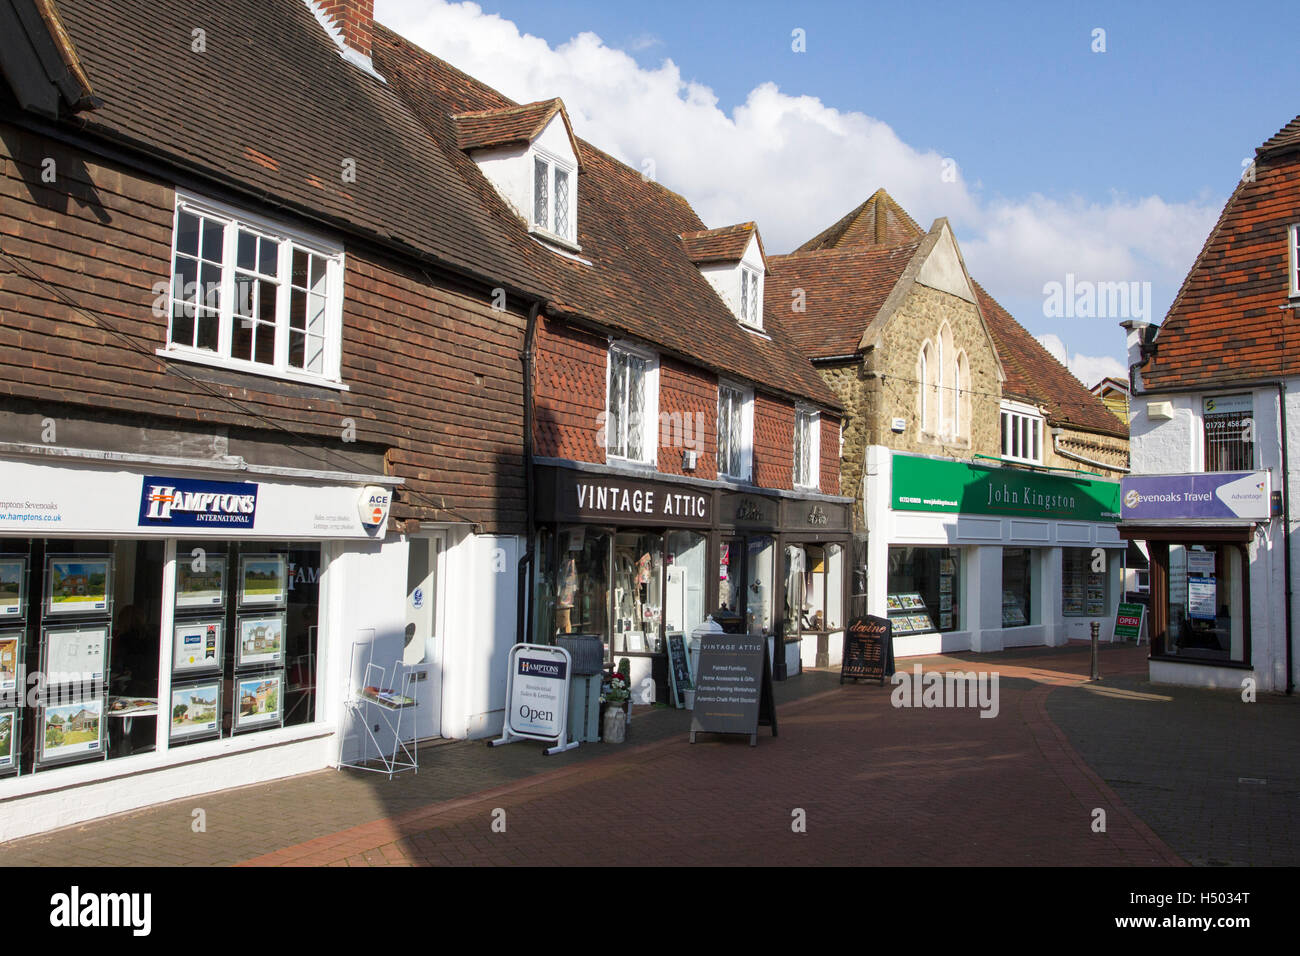 Empty street in the market town of Sevenoaks in Kent, England, UK Stock Photo